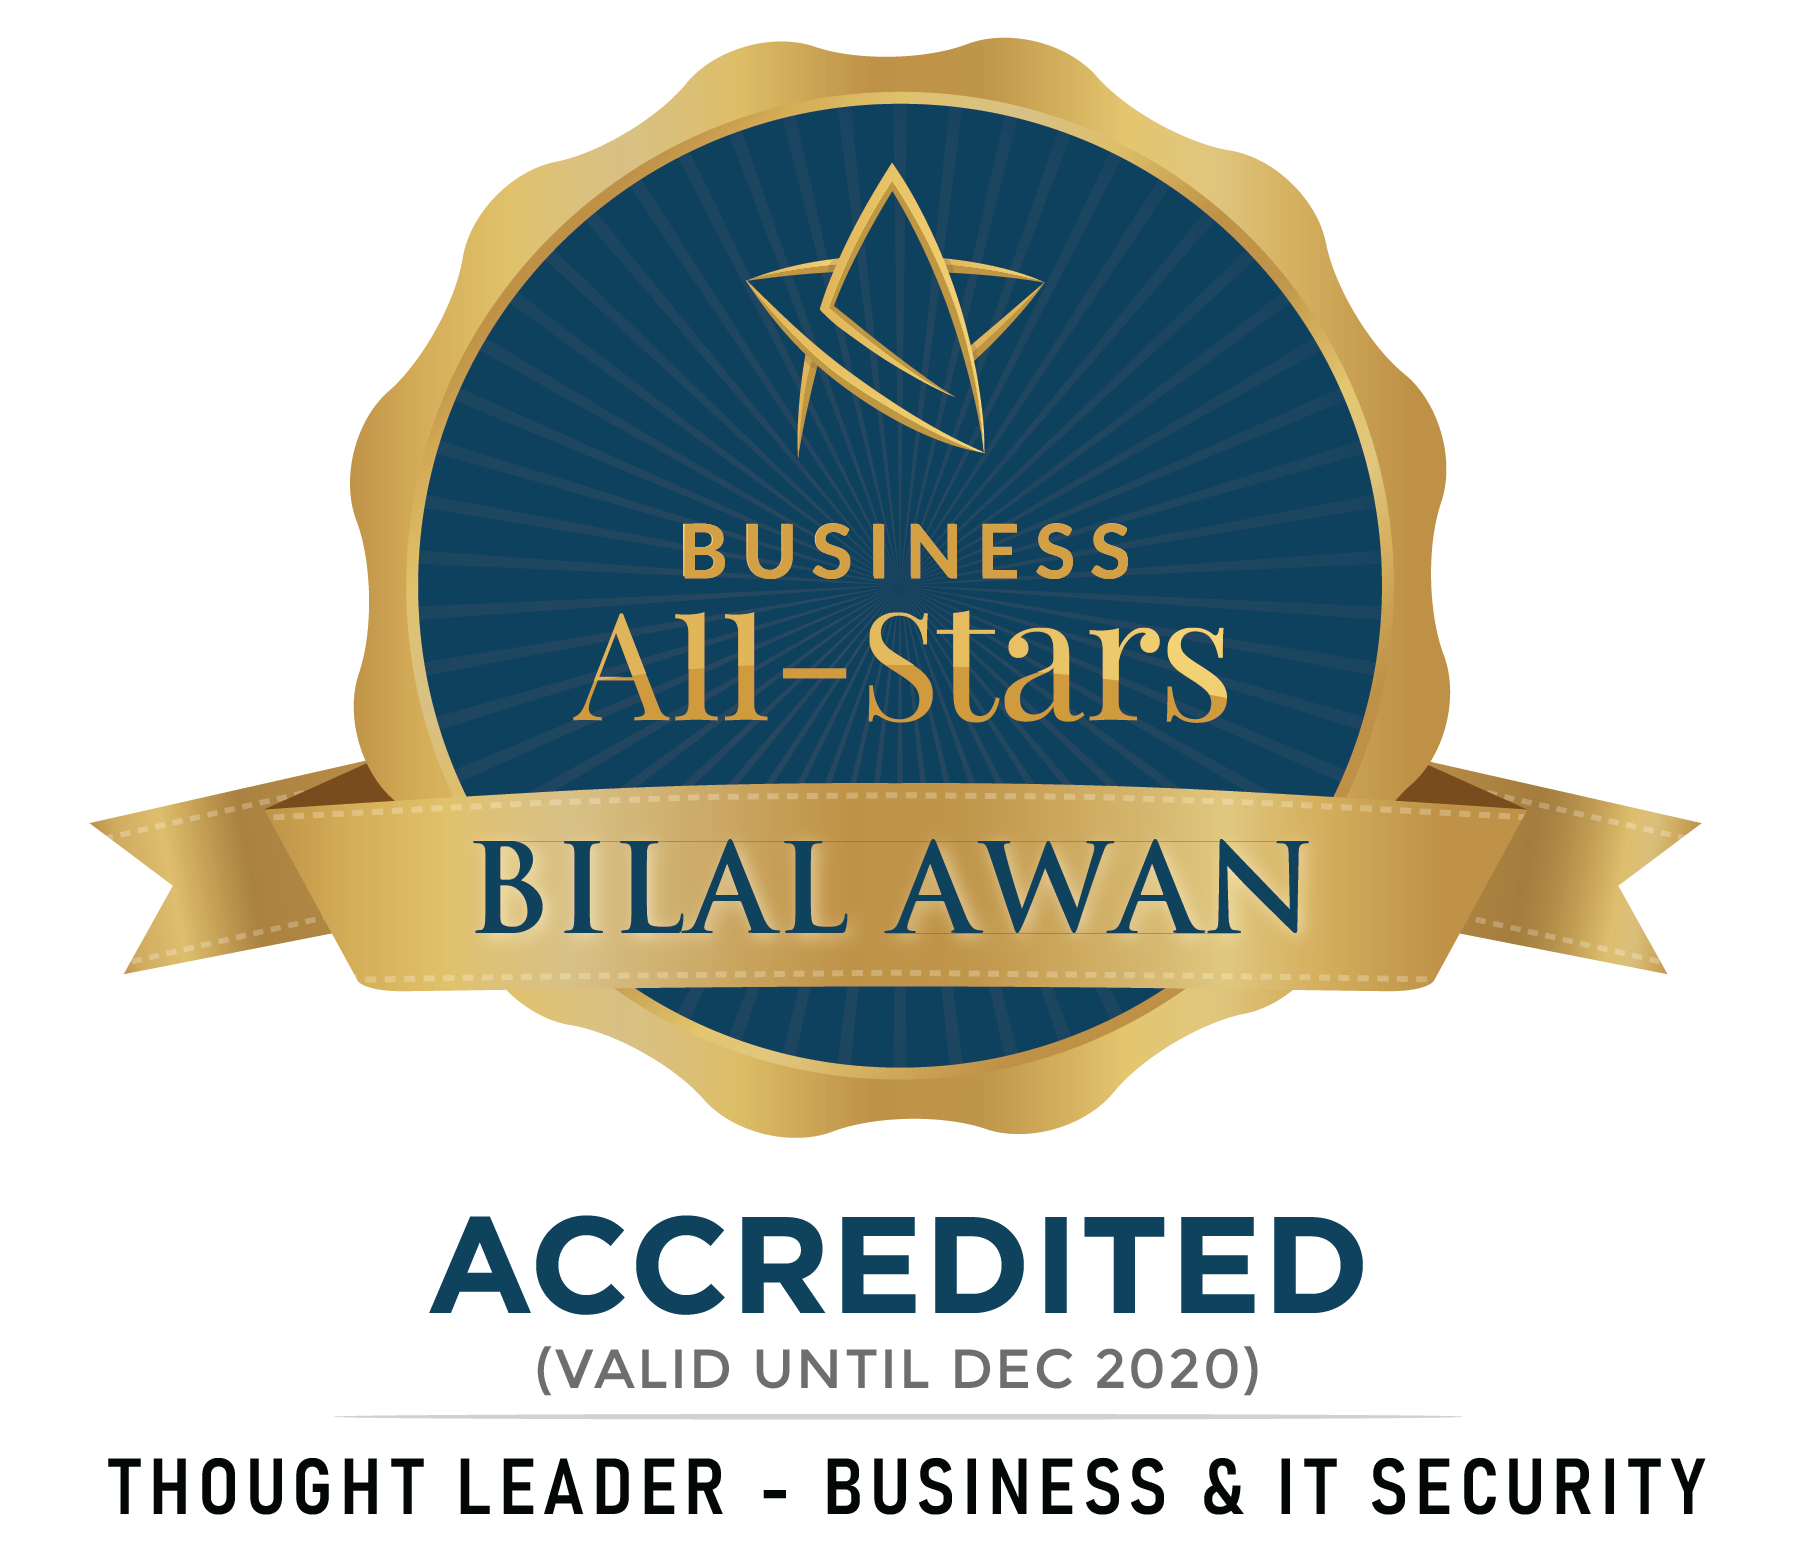 BilalAwan - Fortwell Business Systems - Business All-Stars Accreditation